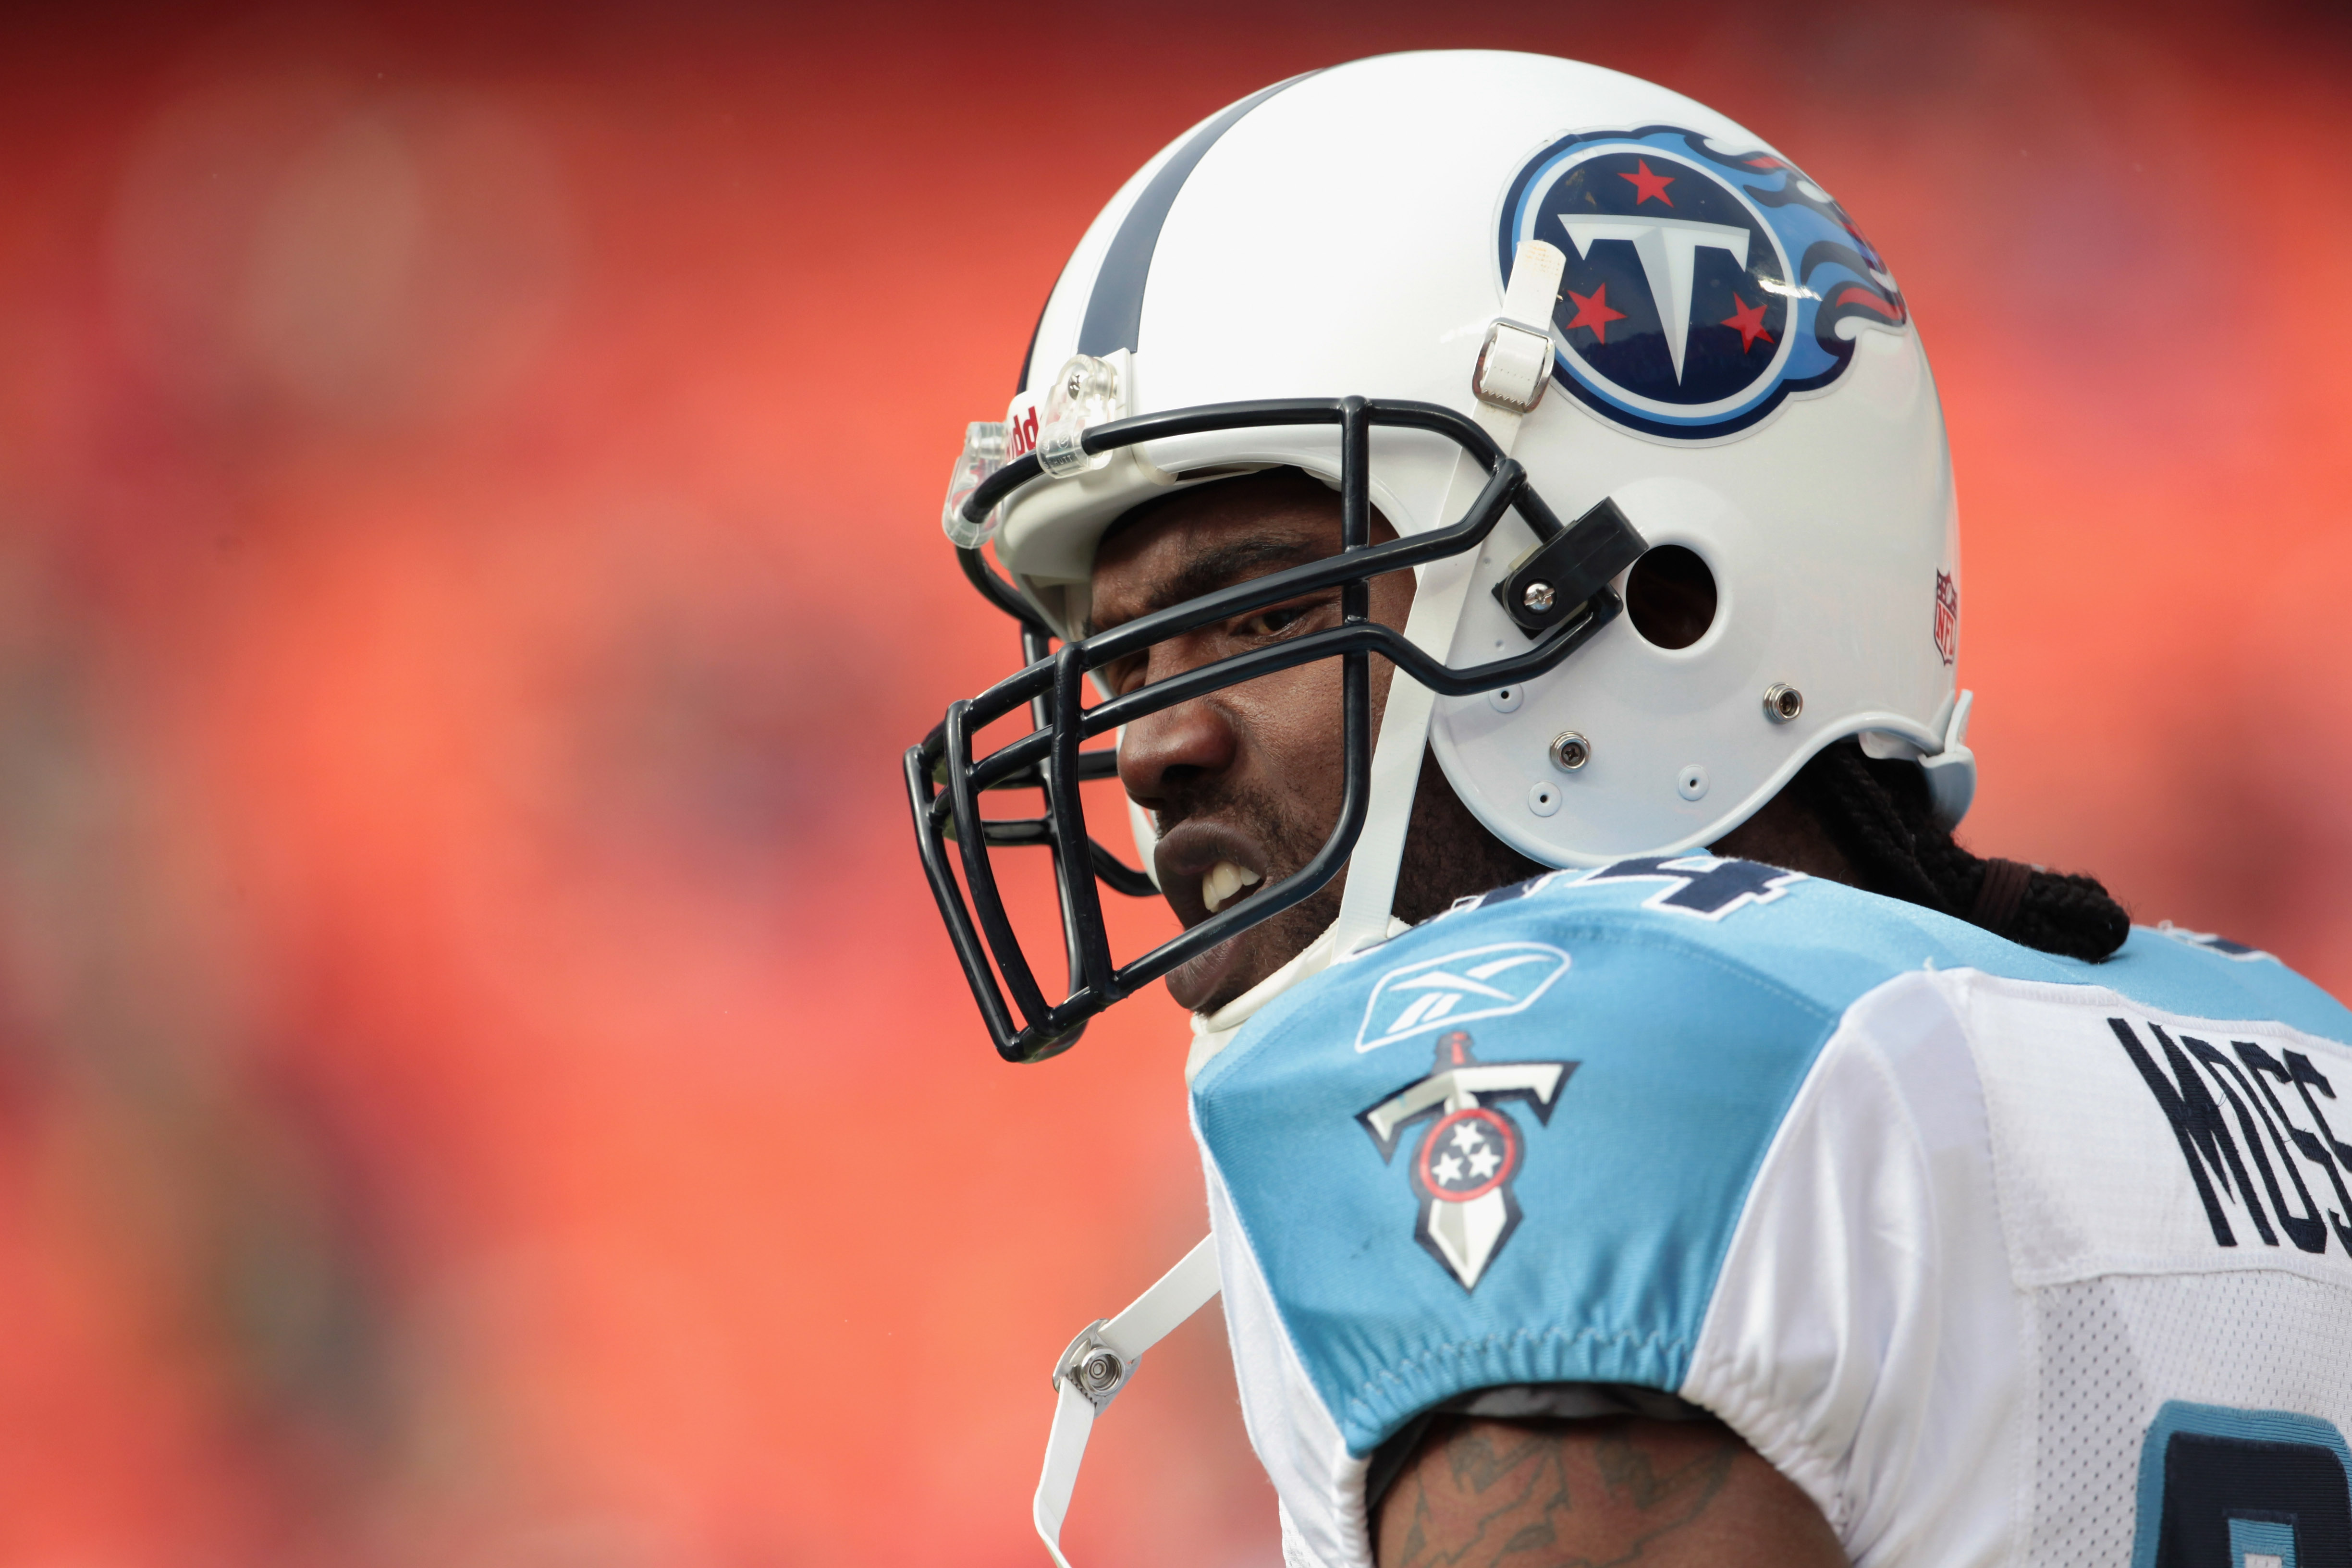 KANSAS CITY, MO - DECEMBER 26:  Receiver Randy Moss #84 of the Tennessee Titans warms up prior to the start of the game against the Kansas City Chiefs on December 26, 2010 at Arrowhead Stadium in Kansas City, Missouri.  (Photo by Jamie Squire/Getty Images